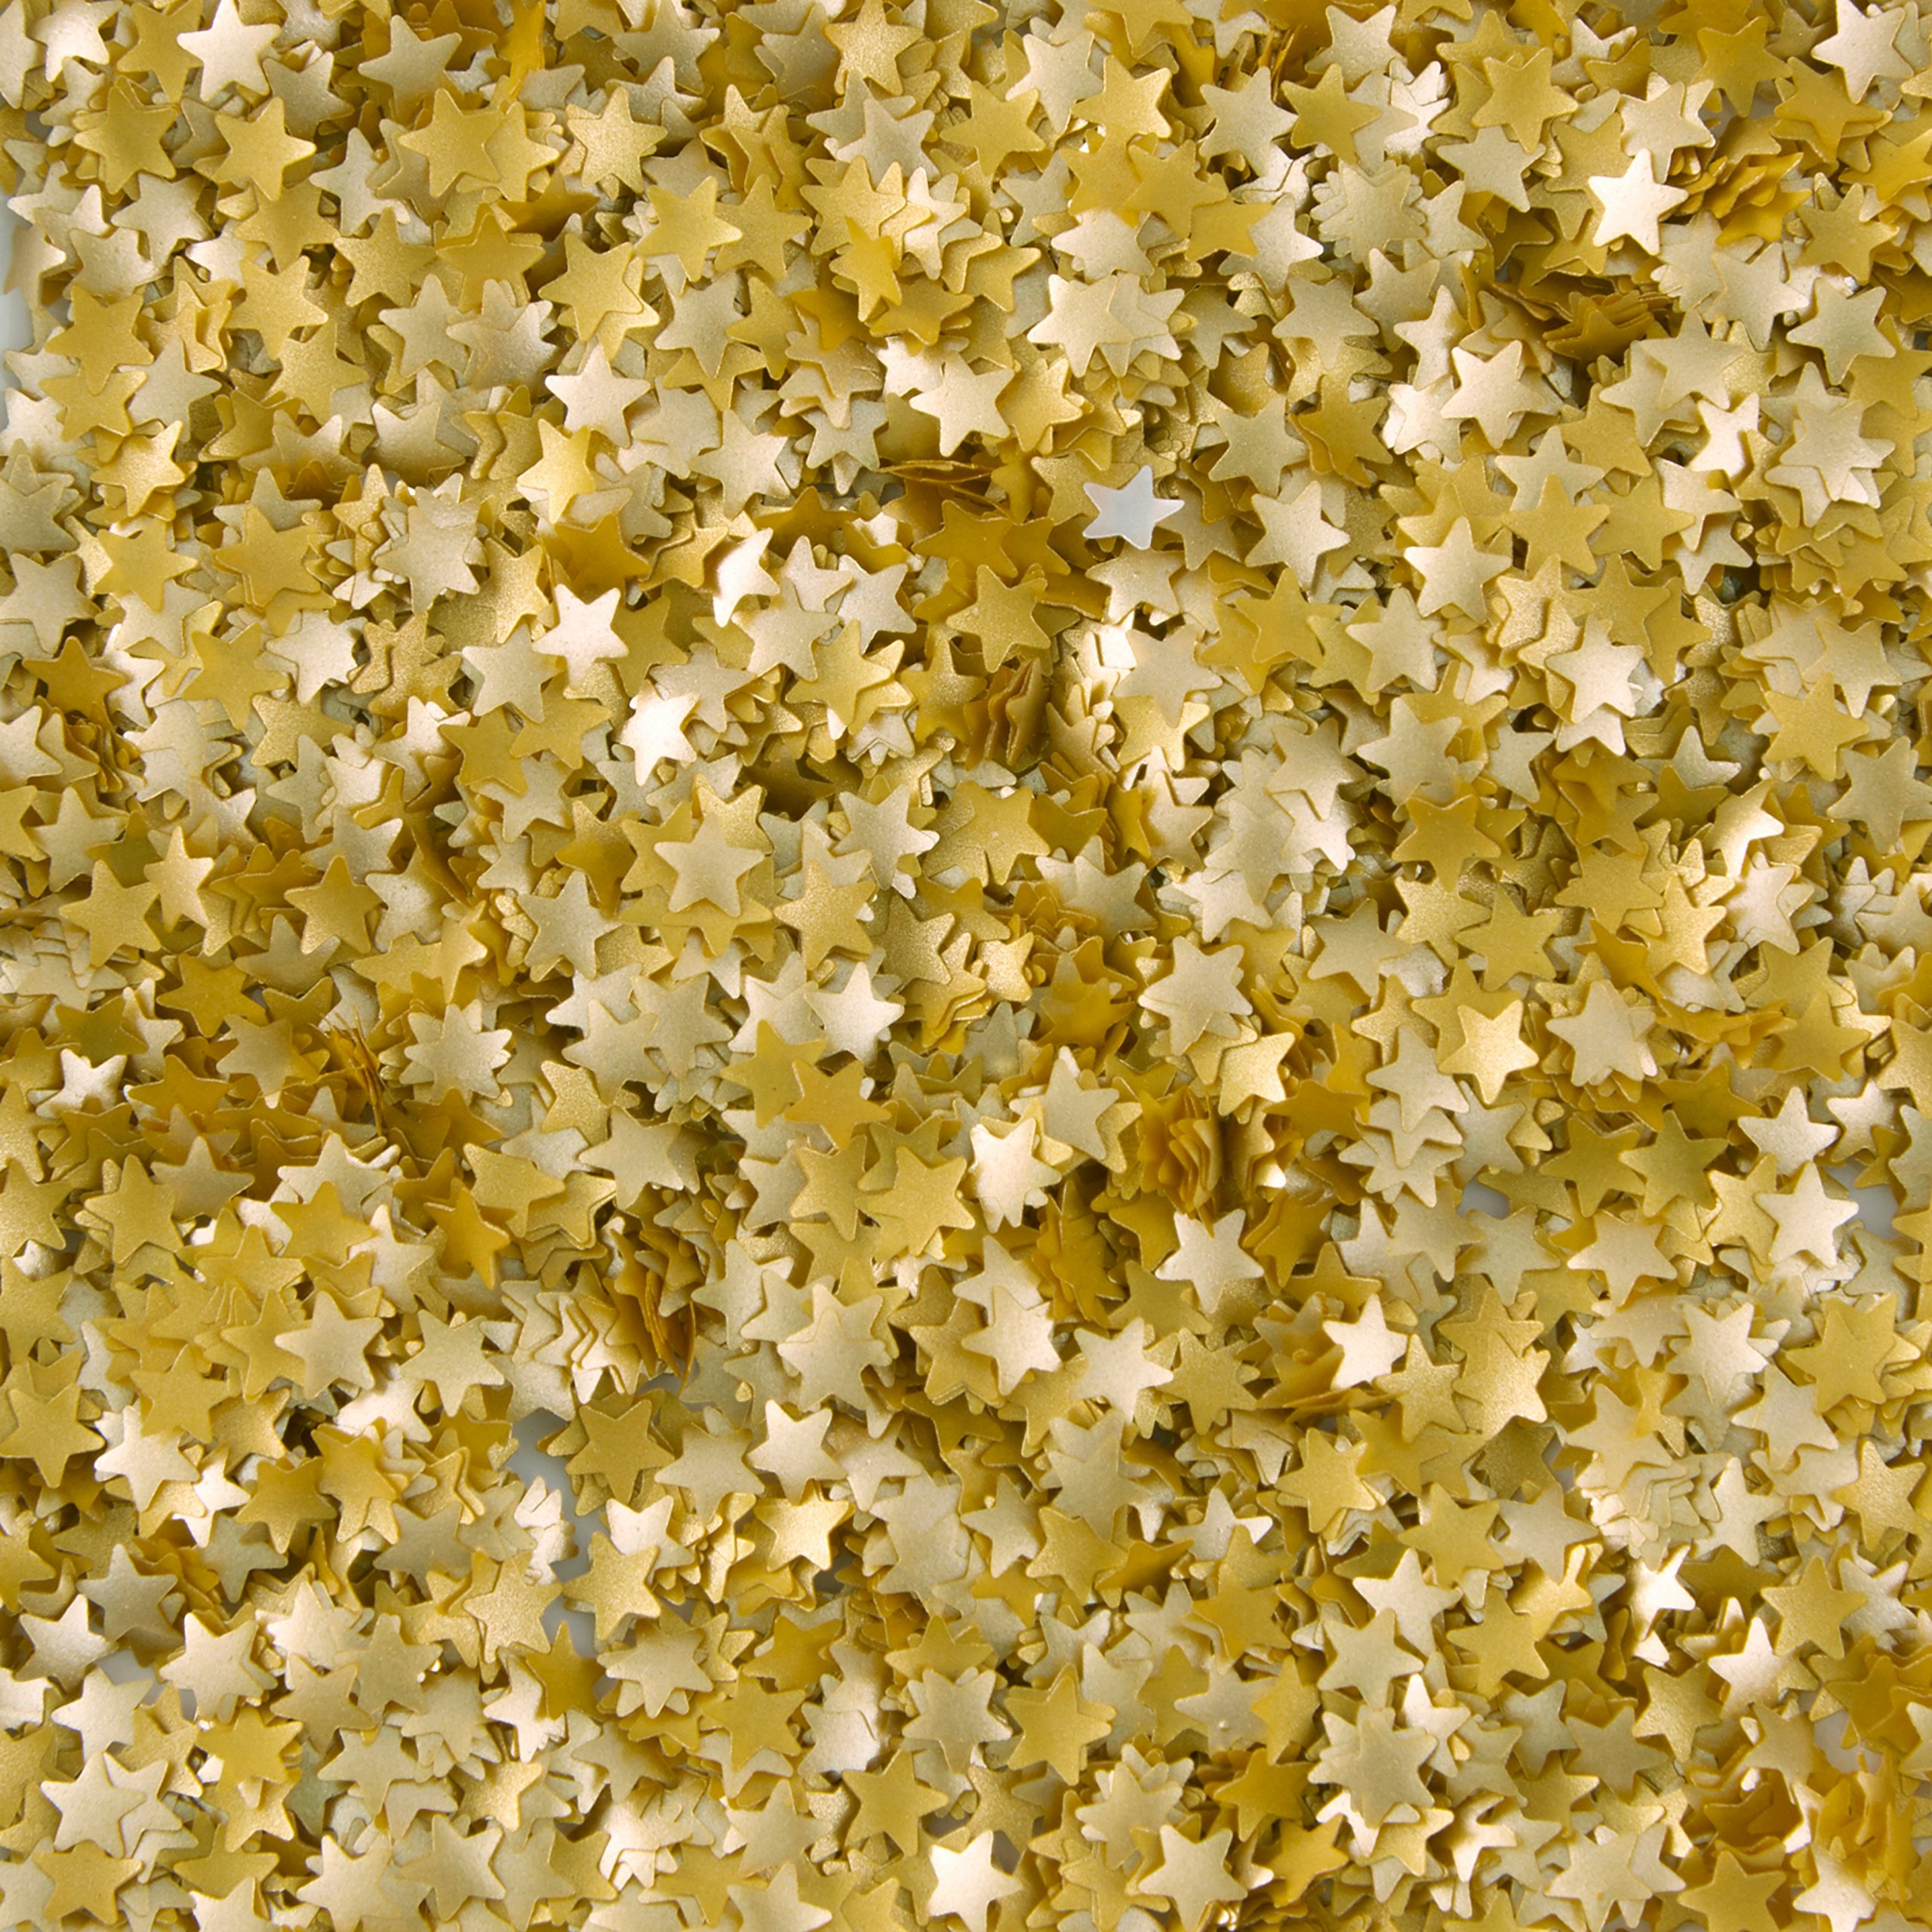 Glitter Gold: Wilton 710-1270 Gold Sequins, 10 OZ.: Amazon.com: Grocery